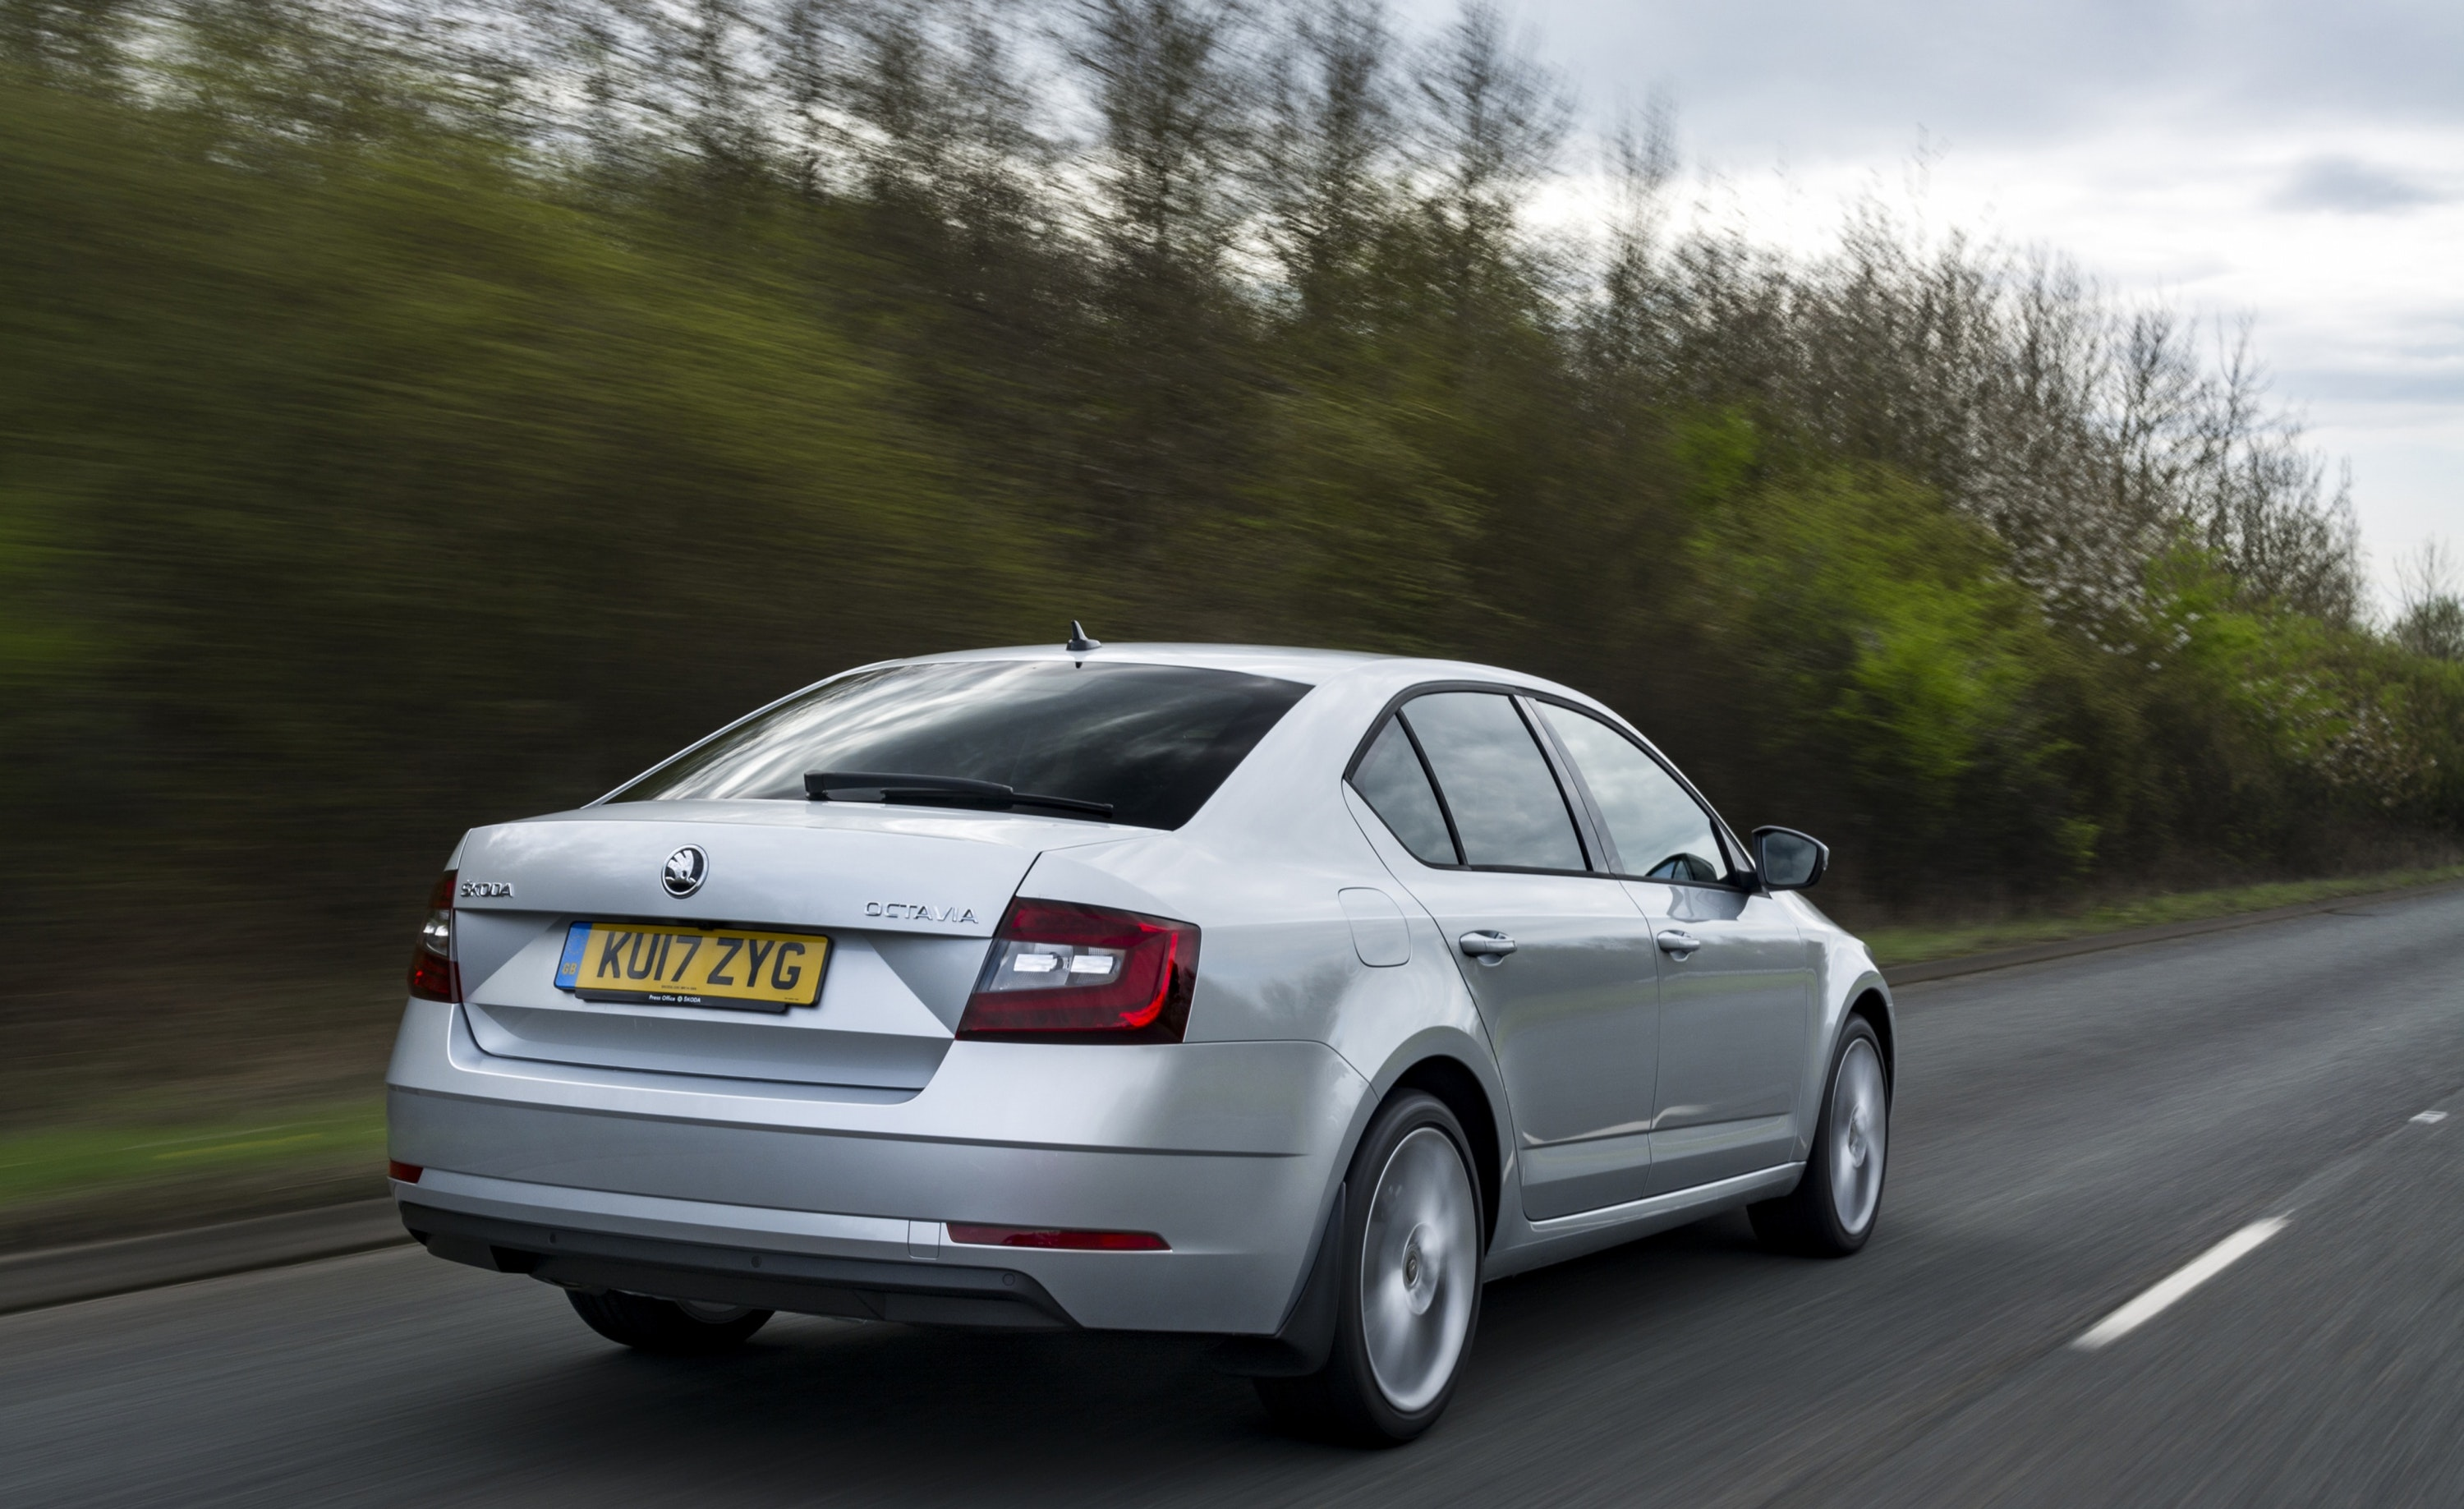 Silver Skoda Octavia driving away from you